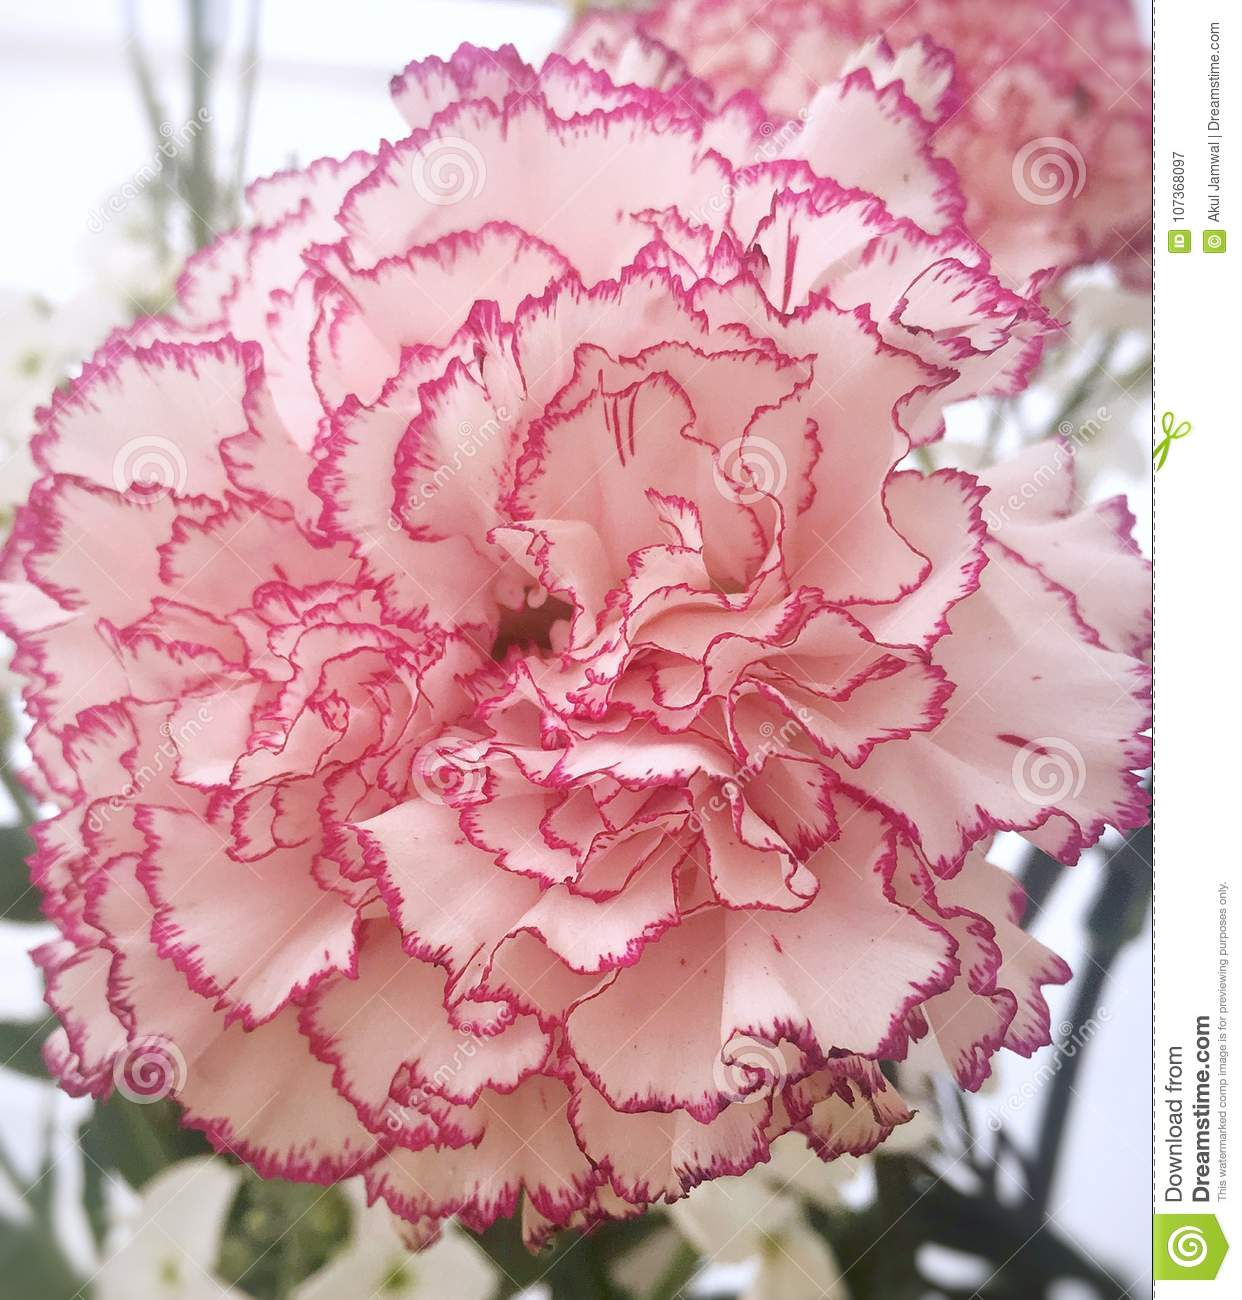 Carnation Flower Stock Image Image Of Blossom Plant 107368097